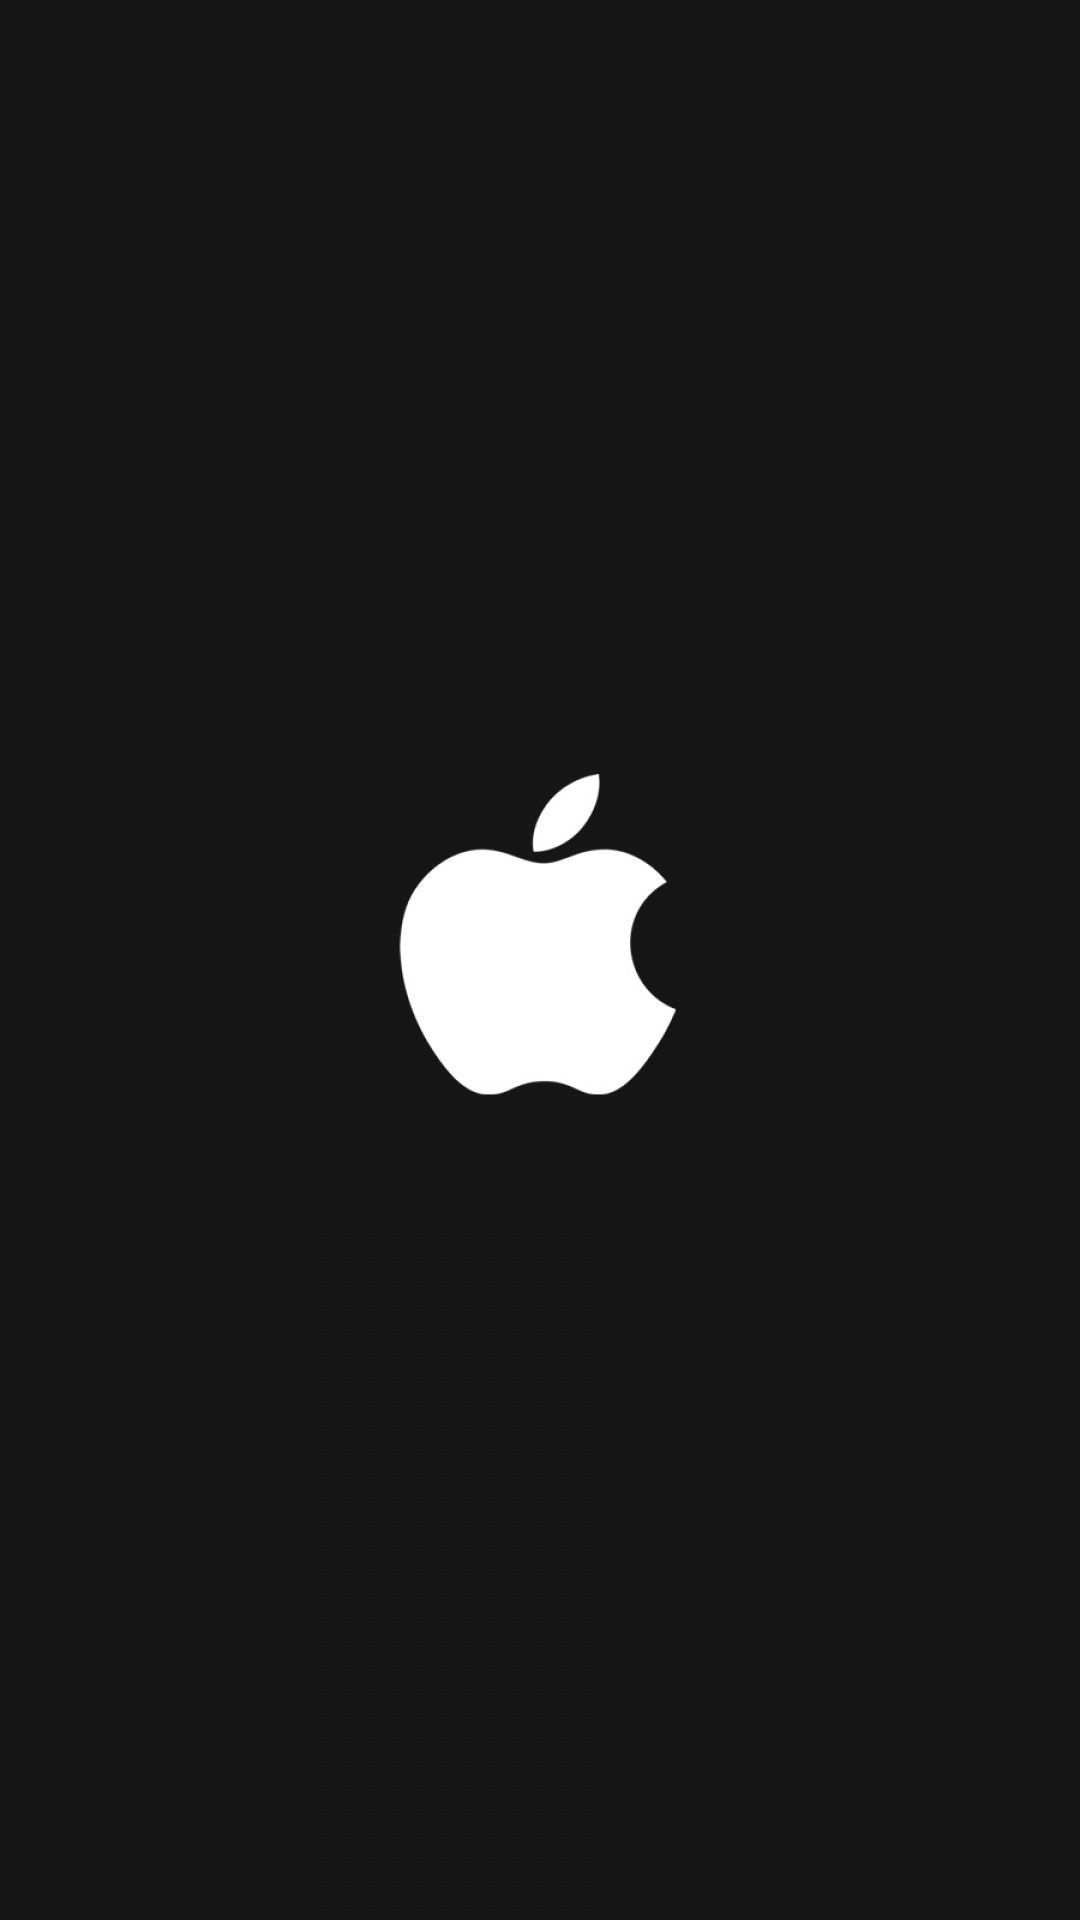 B W Quenalbertini Apple Logo Iphone Wallpaper Apple Logo Wallpaper Iphone Apple Wallpaper Apple Wallpaper Iphone